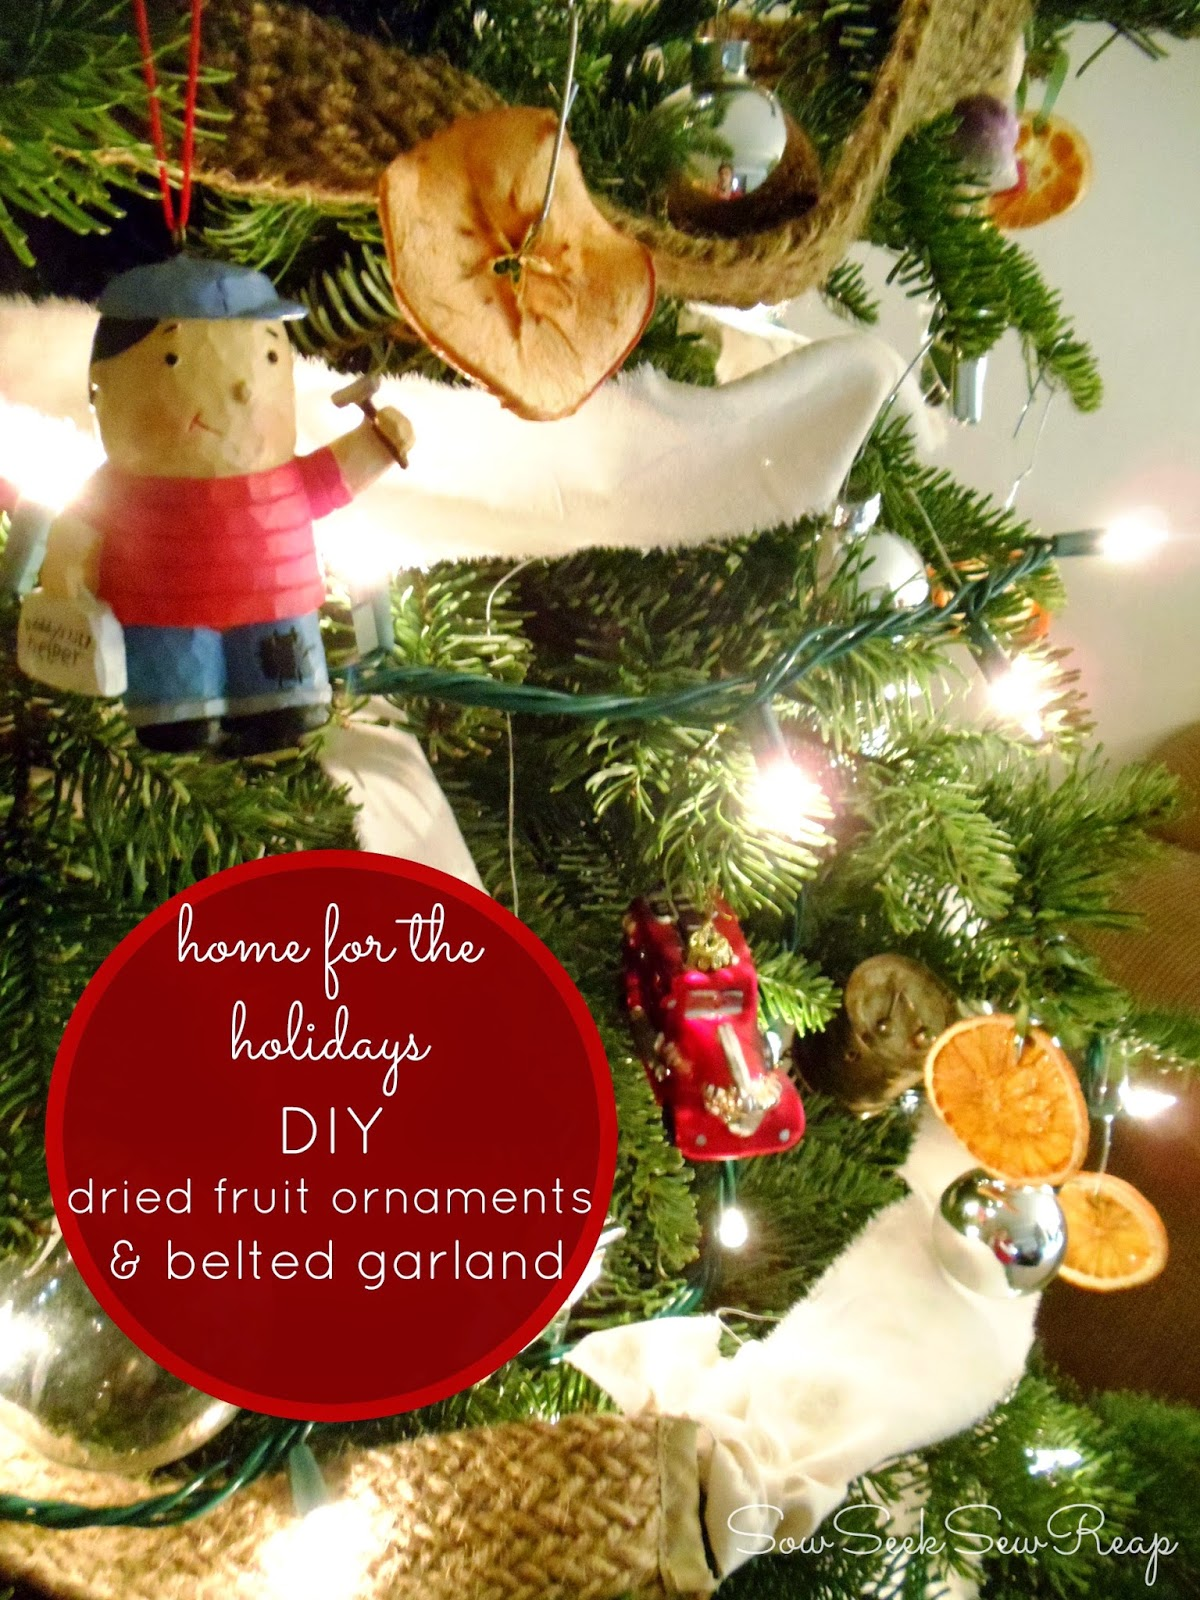 DIY DRIED FRUIT ORNAMENTS, DIY BELTED GARLAND, CHRISTMAS CRAFTS